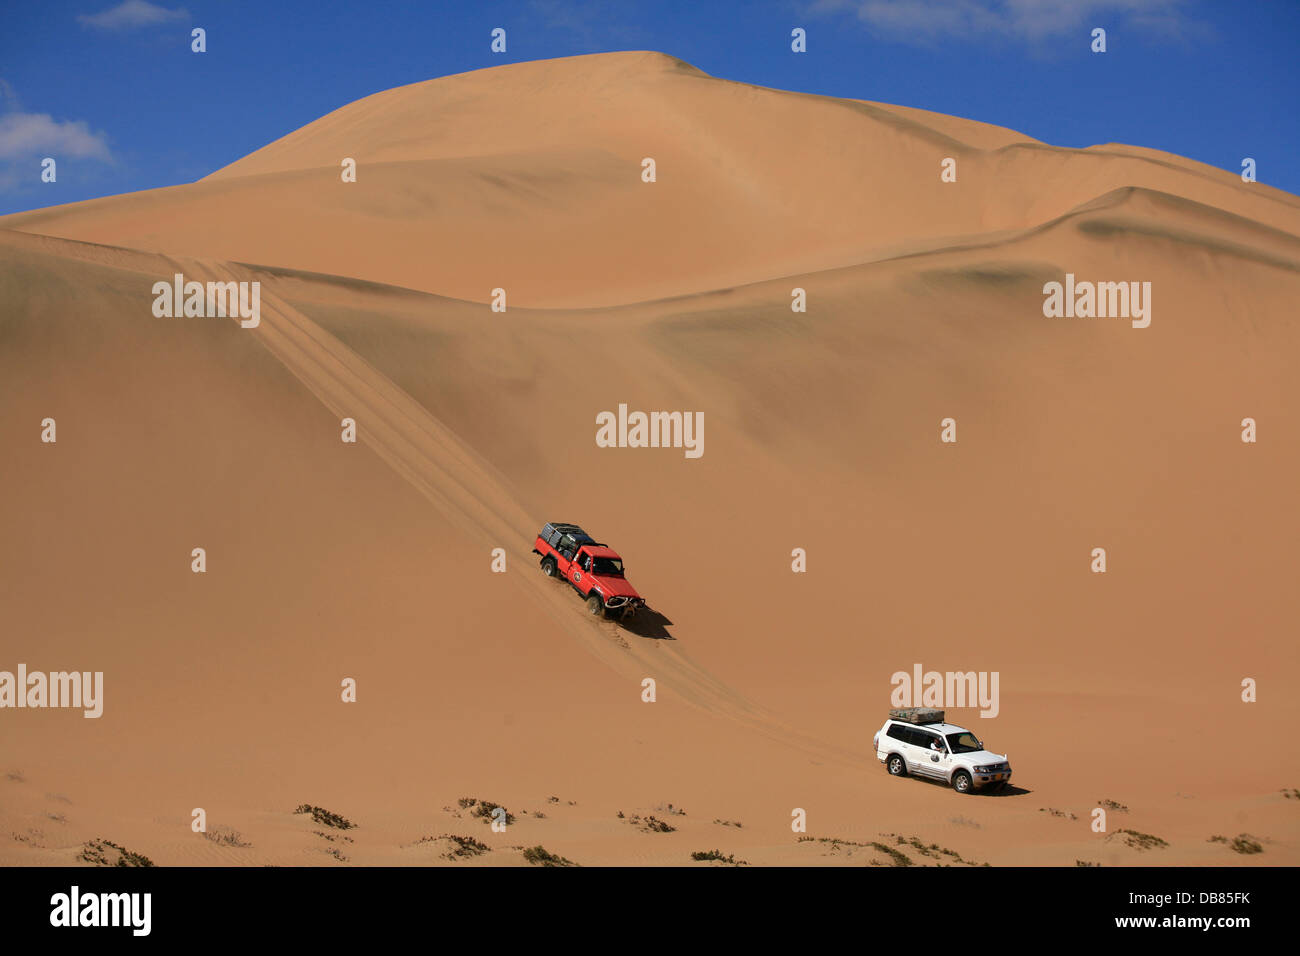 offroad driving in the sand dunes of the Namib Desert, Namibia - Stock Image